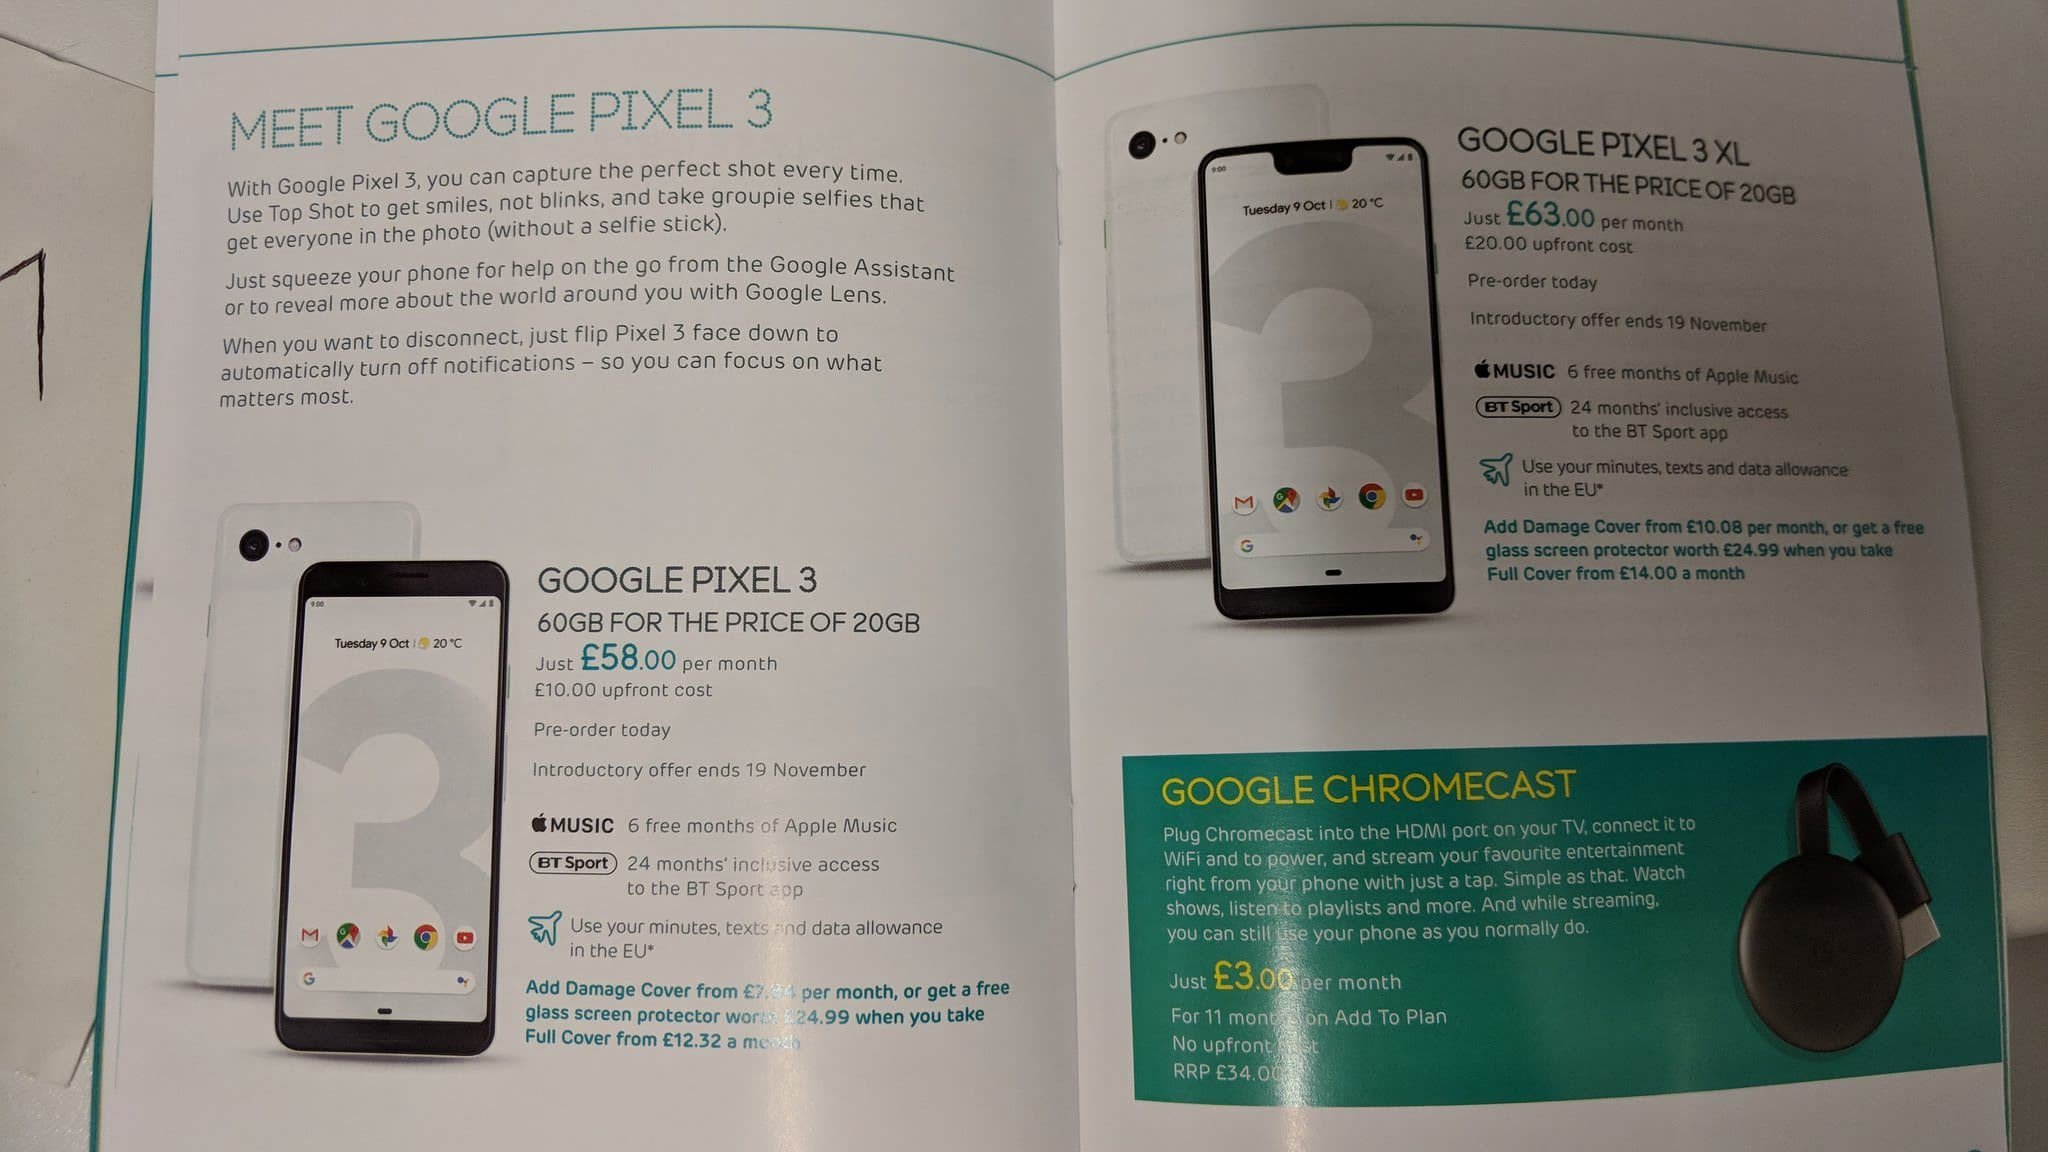 Google Pixel 3, Pixel 3 XL launch event 2018